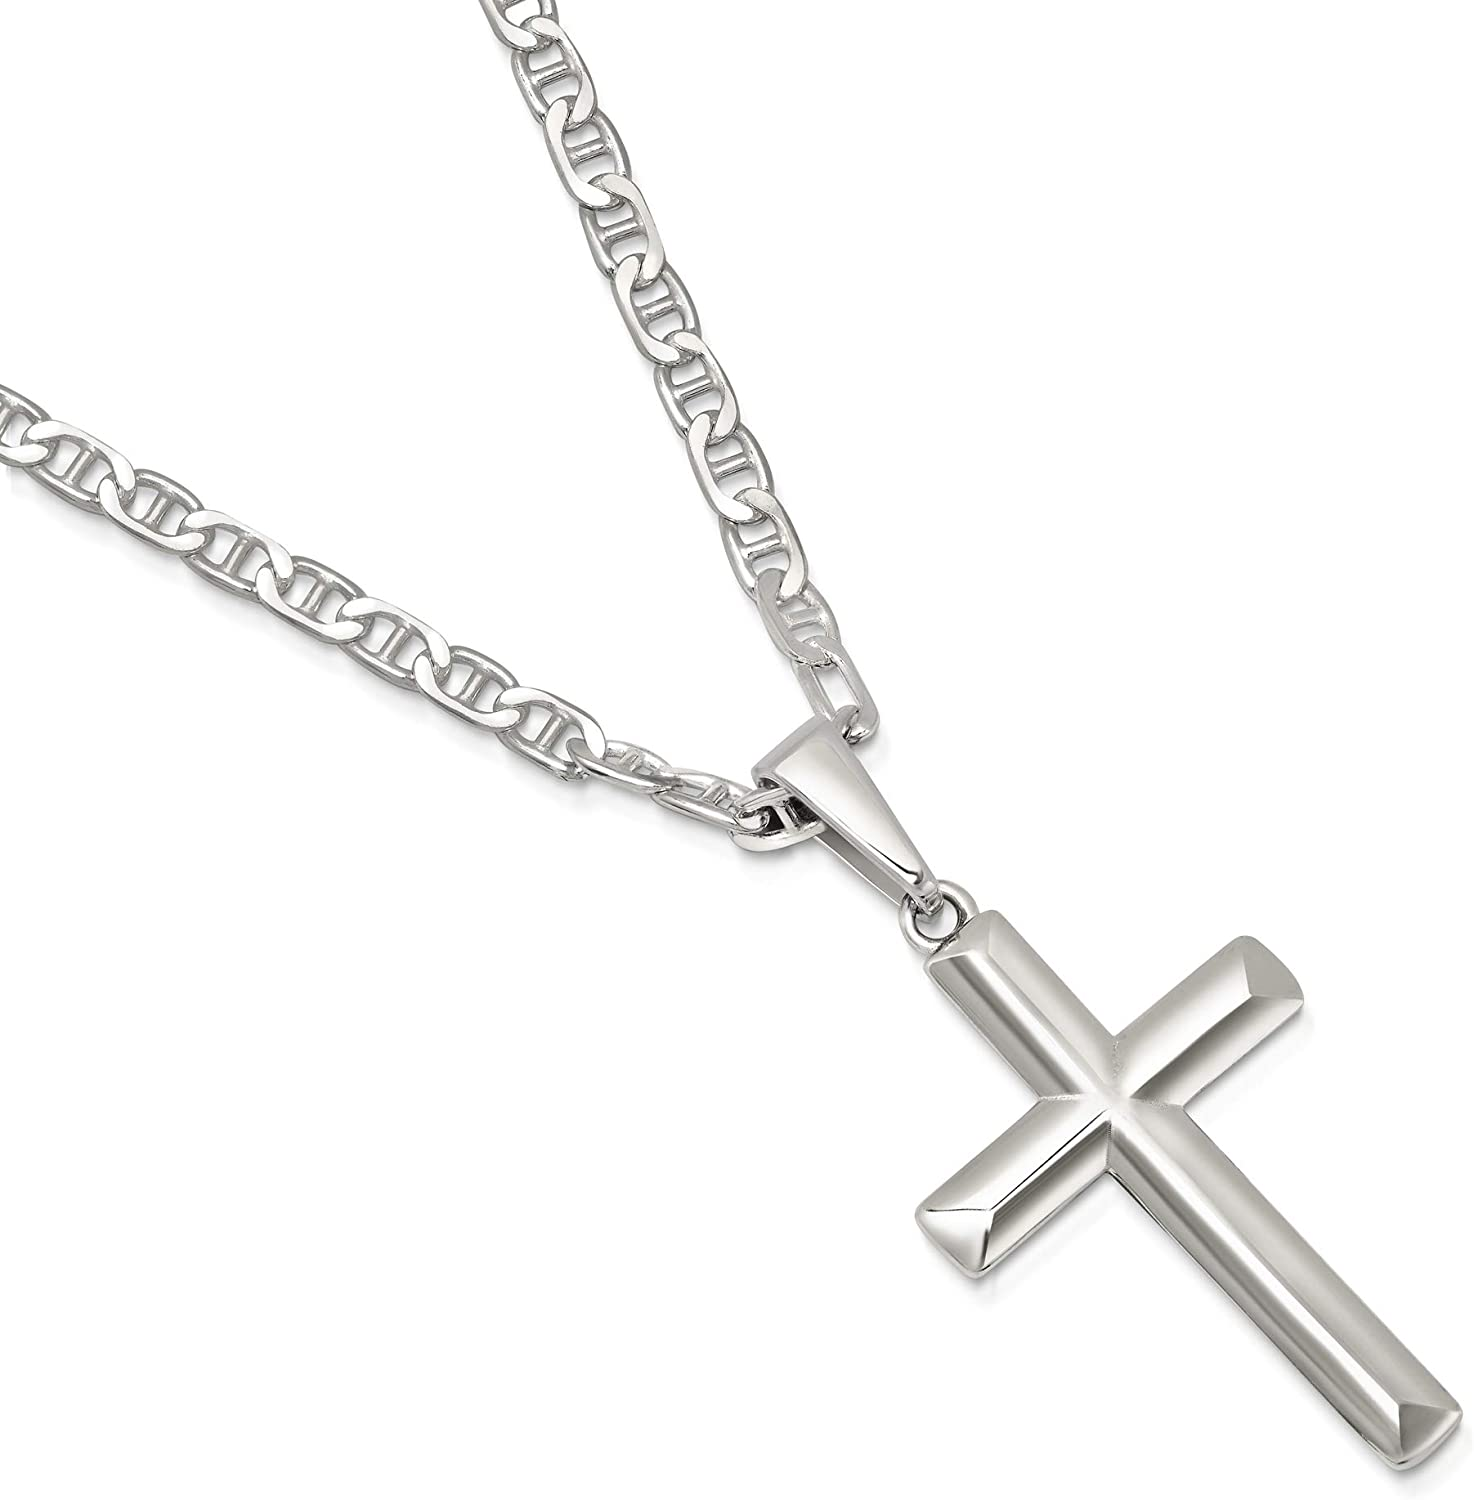 with Secure Lobster Lock Clasp Solid Stainless Steel Vintage Antiqued and Crystals Cross Pendant Necklace Charm Chain